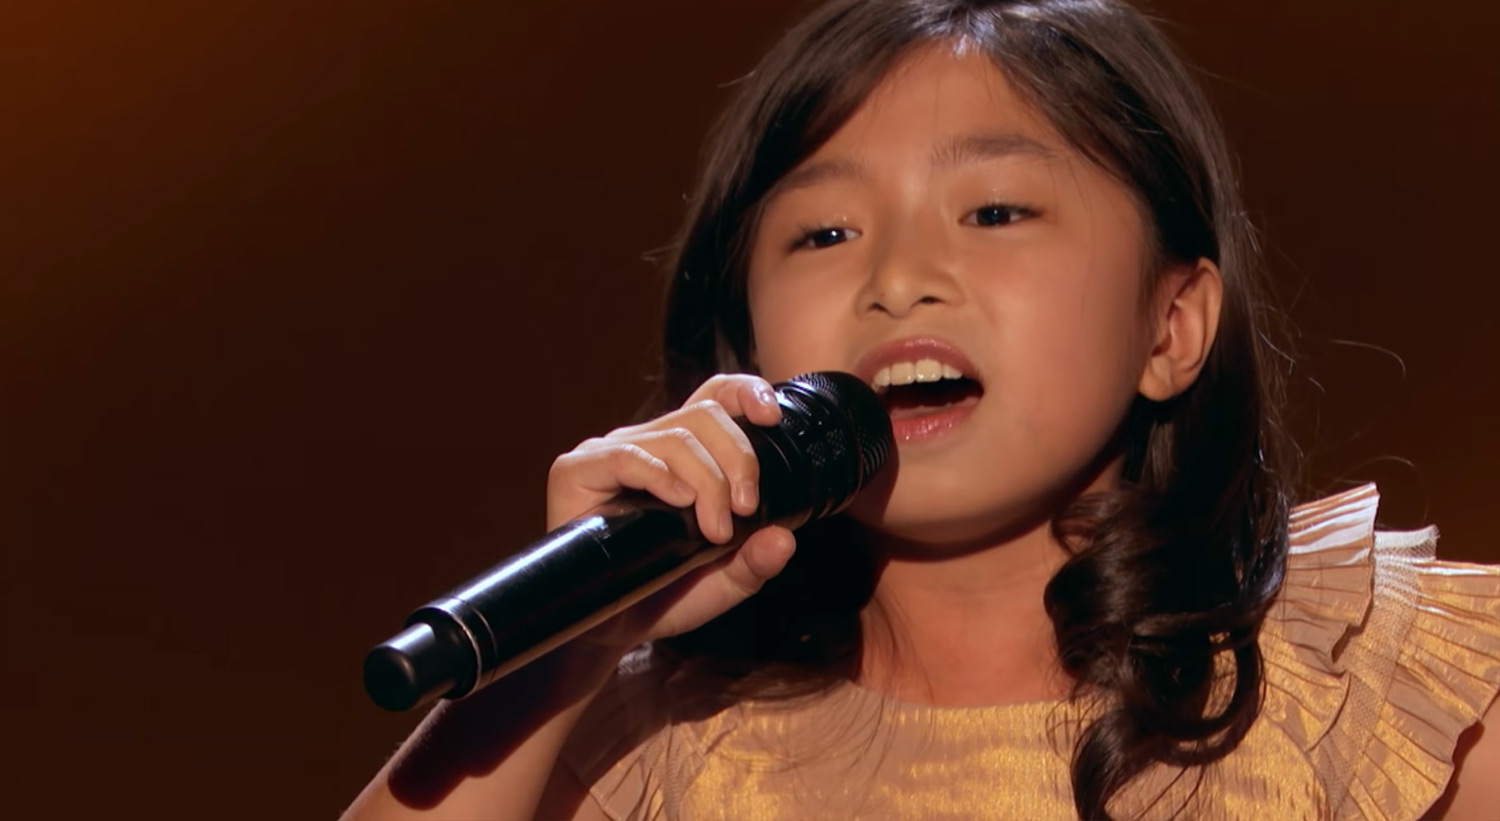 Americas got talent 2017 celine - 9 Year Old Celine Tam Gets Golden Buzzer For Her Amazing America S Got Talent Performance Video America S Got Talent Celine Tam Just Jared